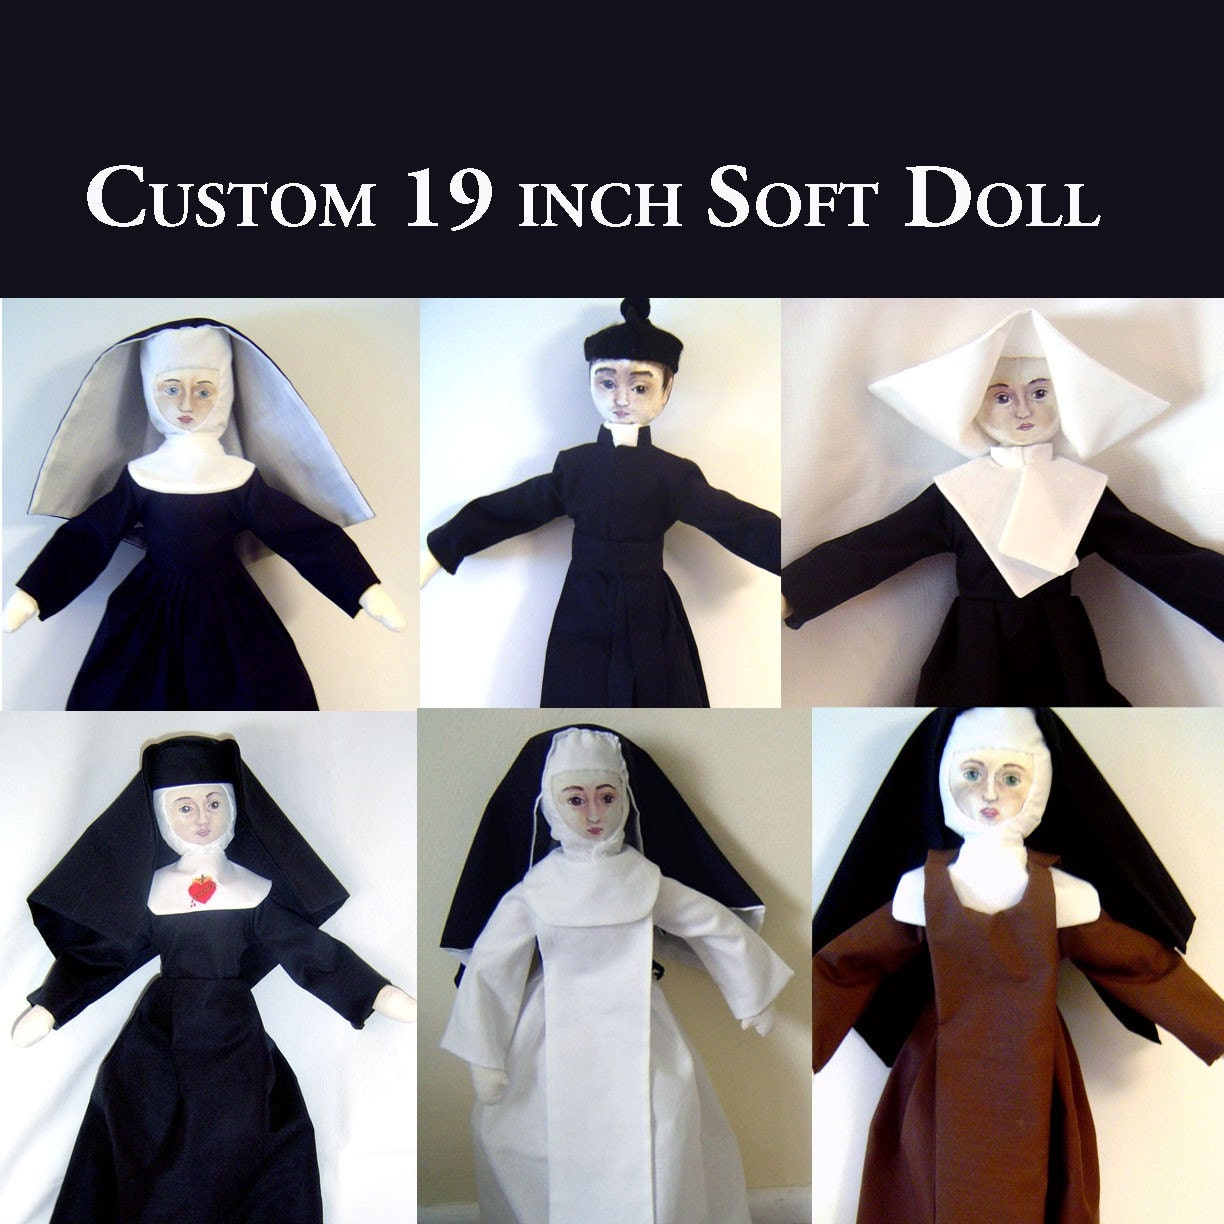 "Custom 19"" Cloth Doll"